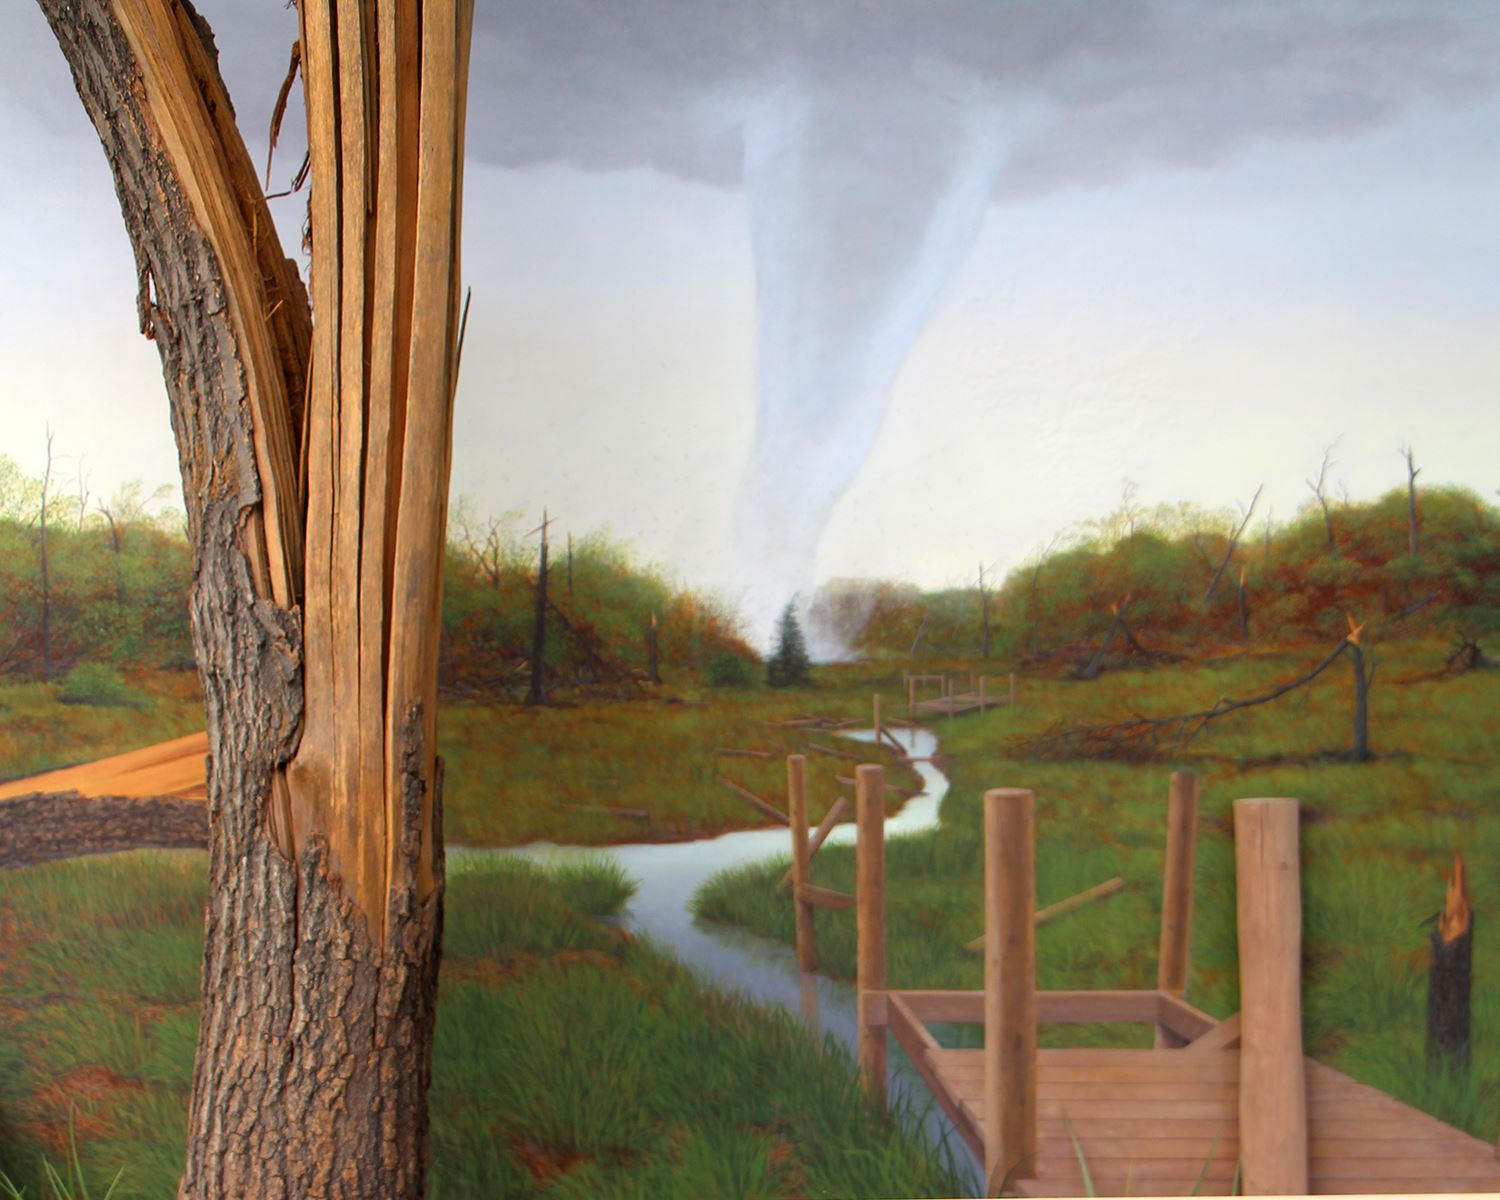 tornado exhibit background